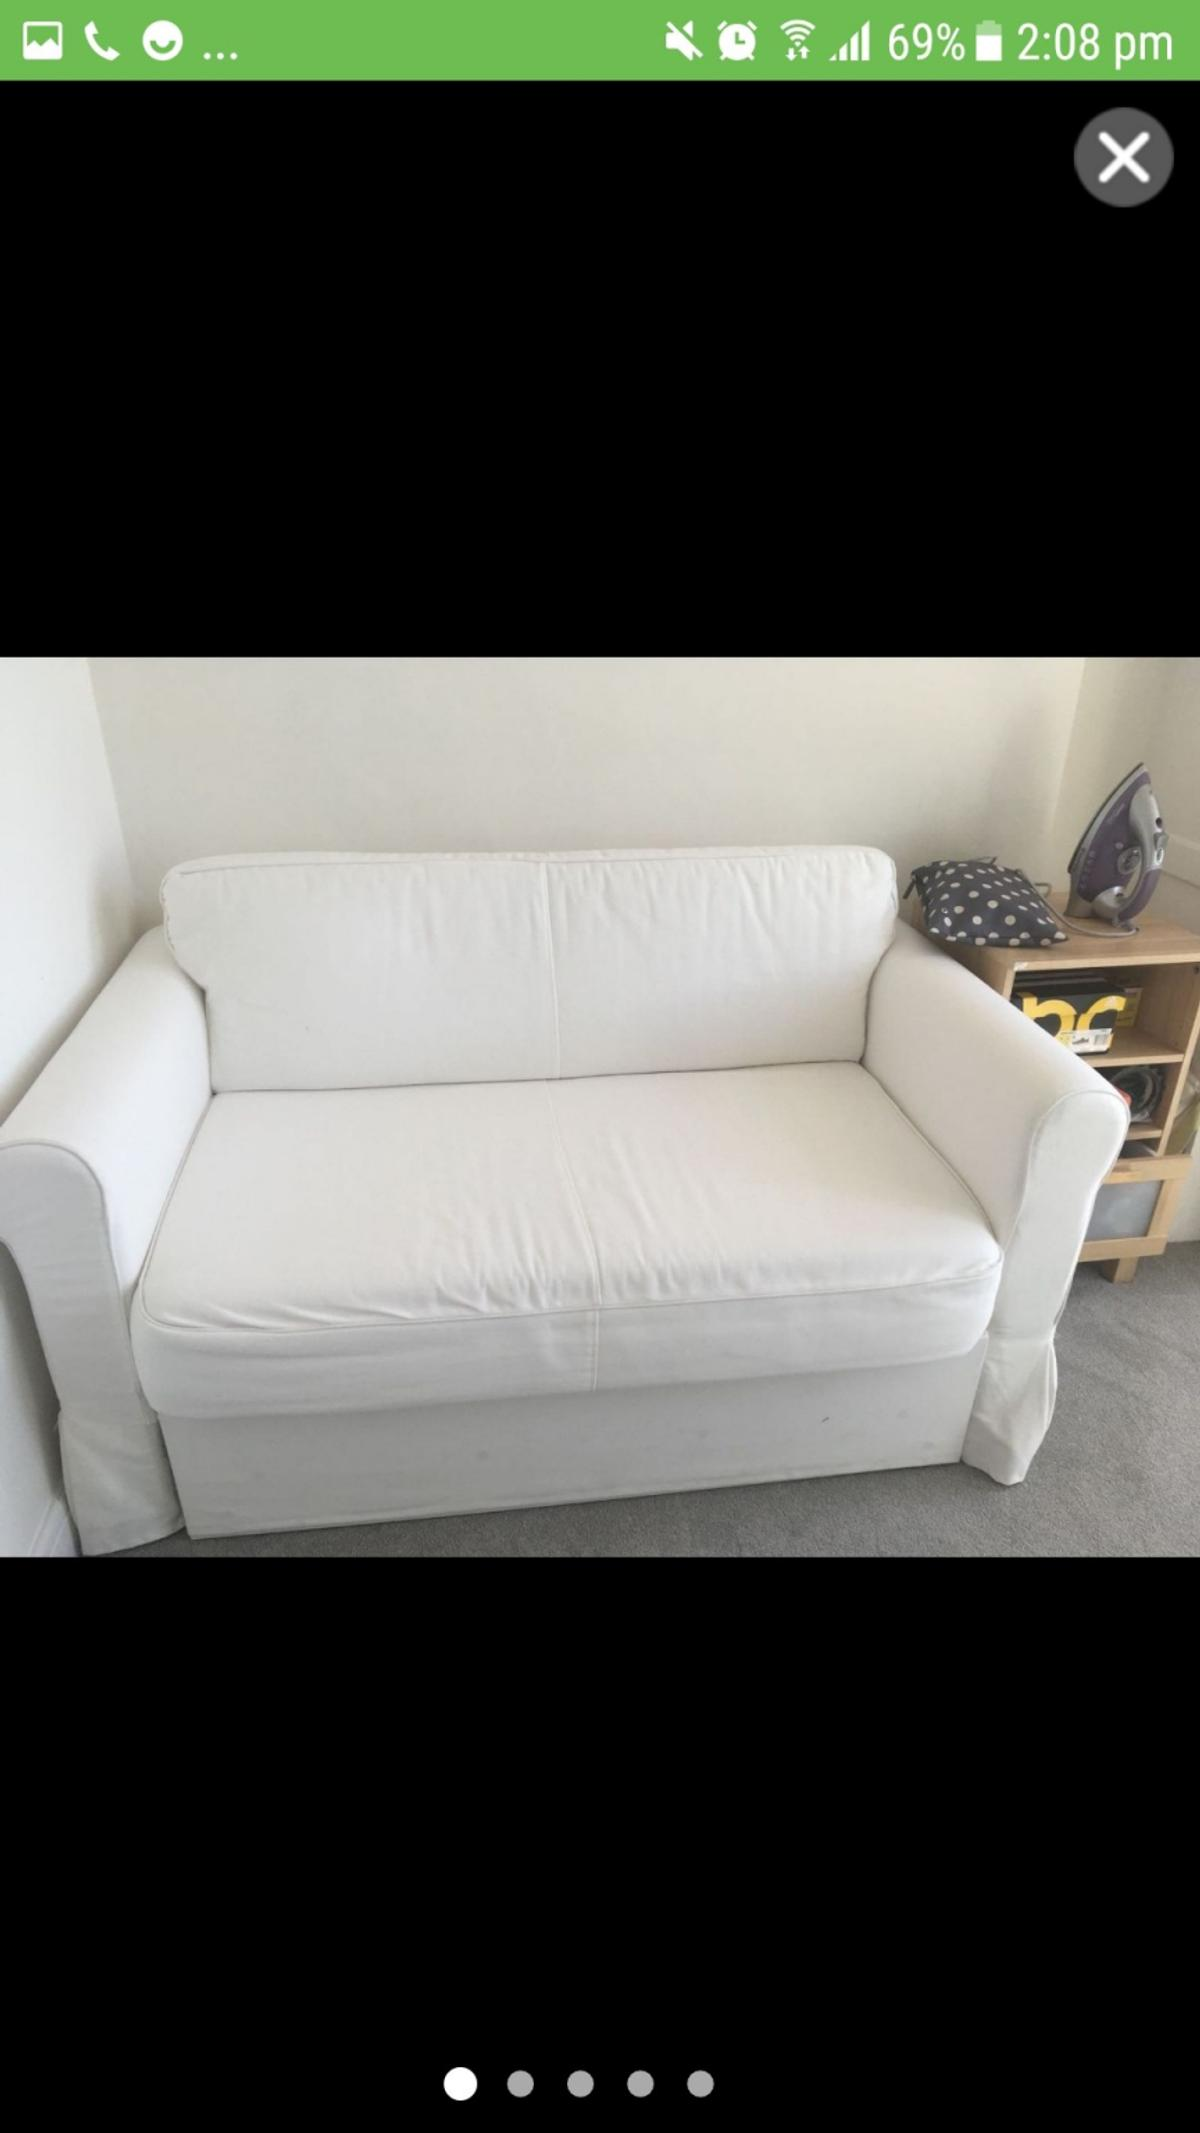 Tremendous Ikea Hagalund Double Sofa Bed Like New Bralicious Painted Fabric Chair Ideas Braliciousco